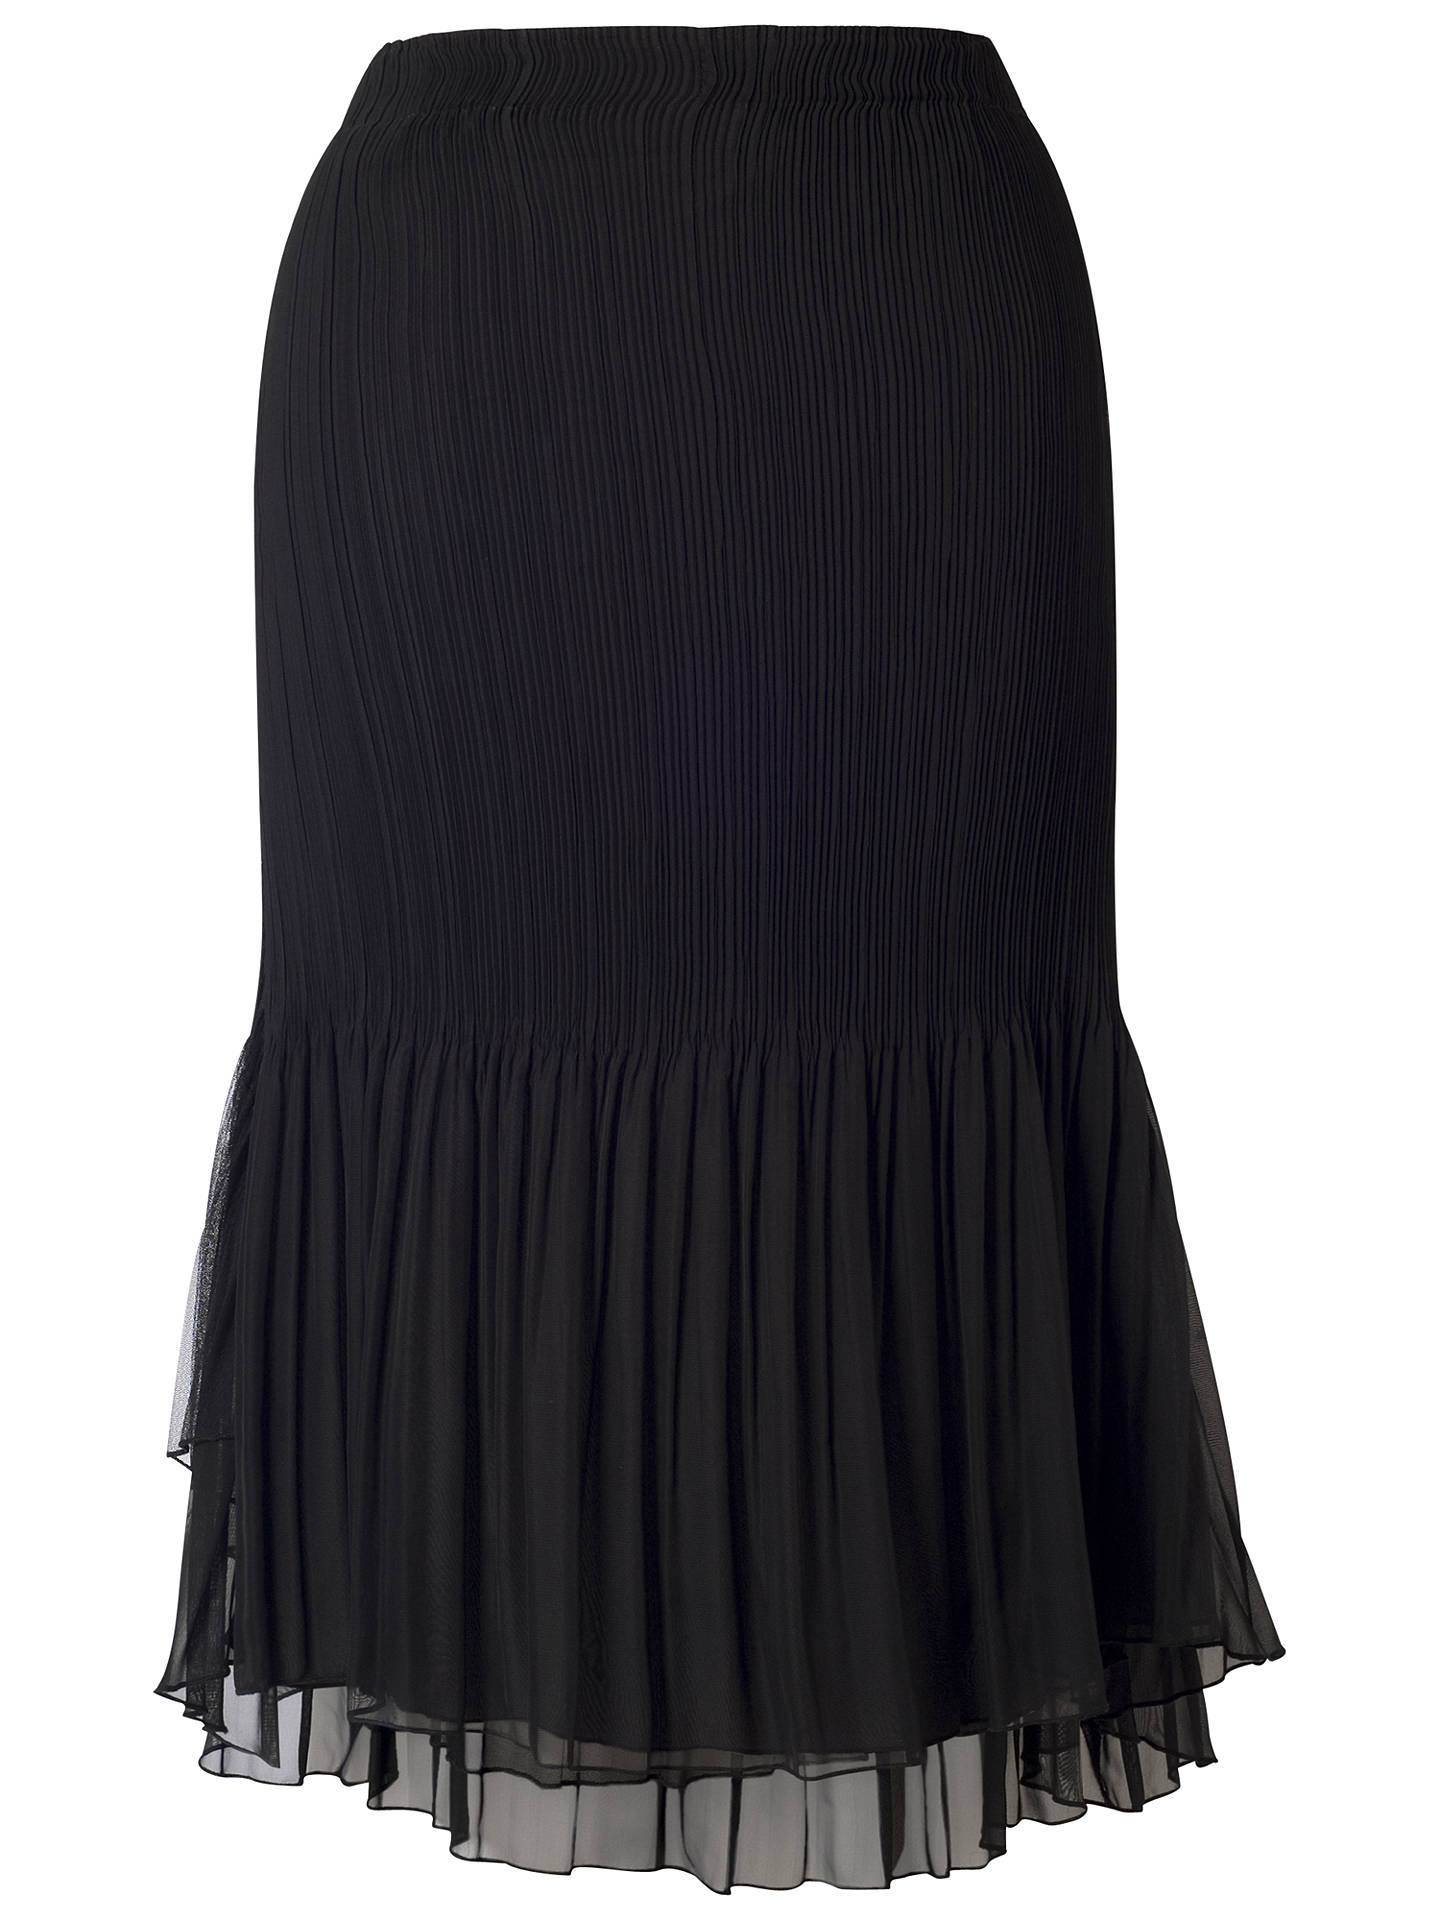 BuyChesca Mesh Trim Pleated Skirt, Black, 12-14 Online at johnlewis.com